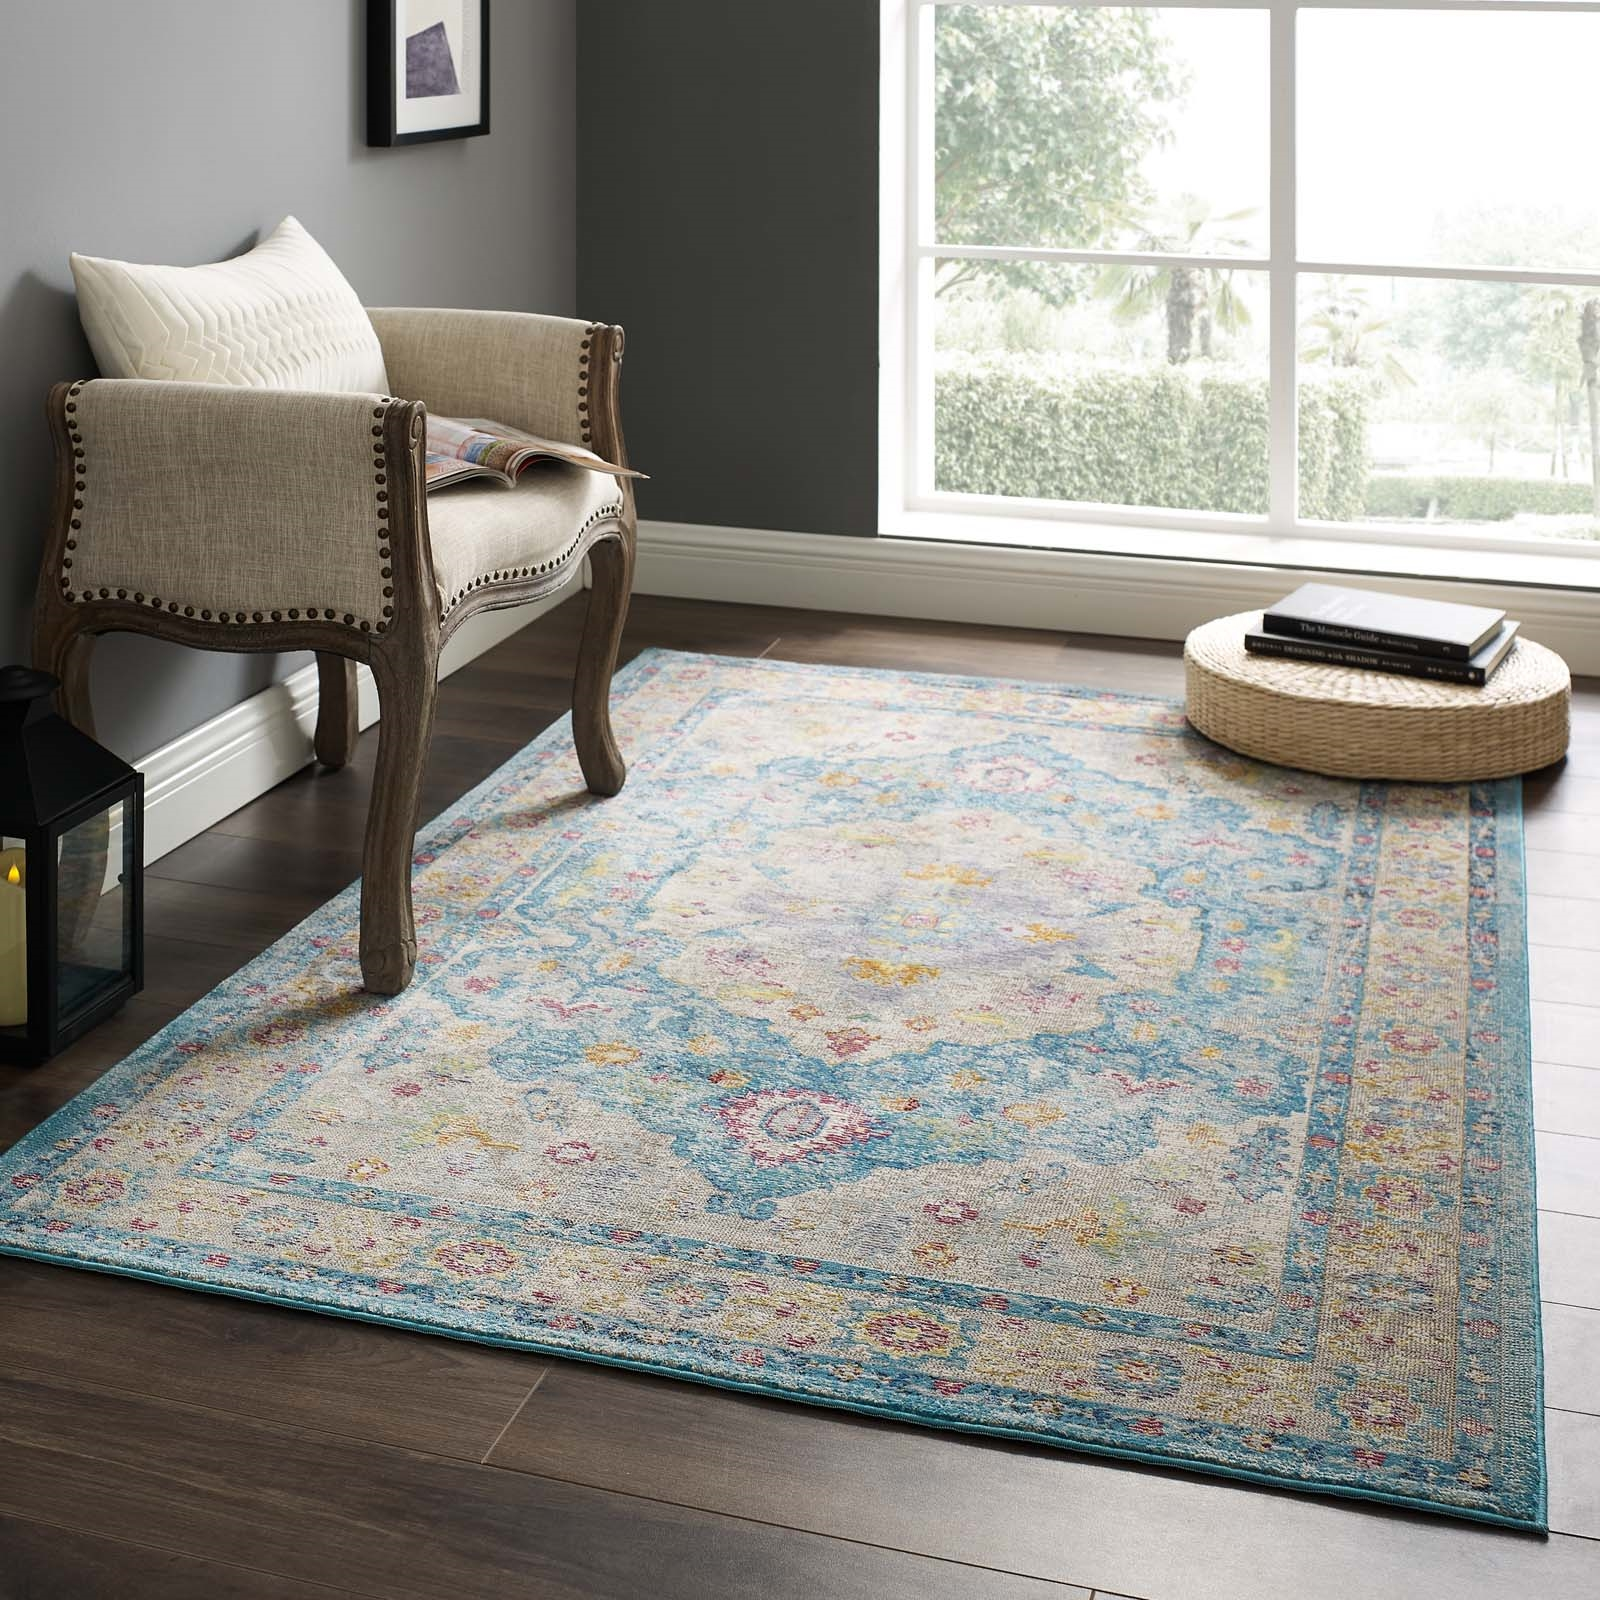 Success Anisah Distressed Floral Persian Medallion 4x6 Area Rug in Light Blue, Ivory, Yellow, Orange